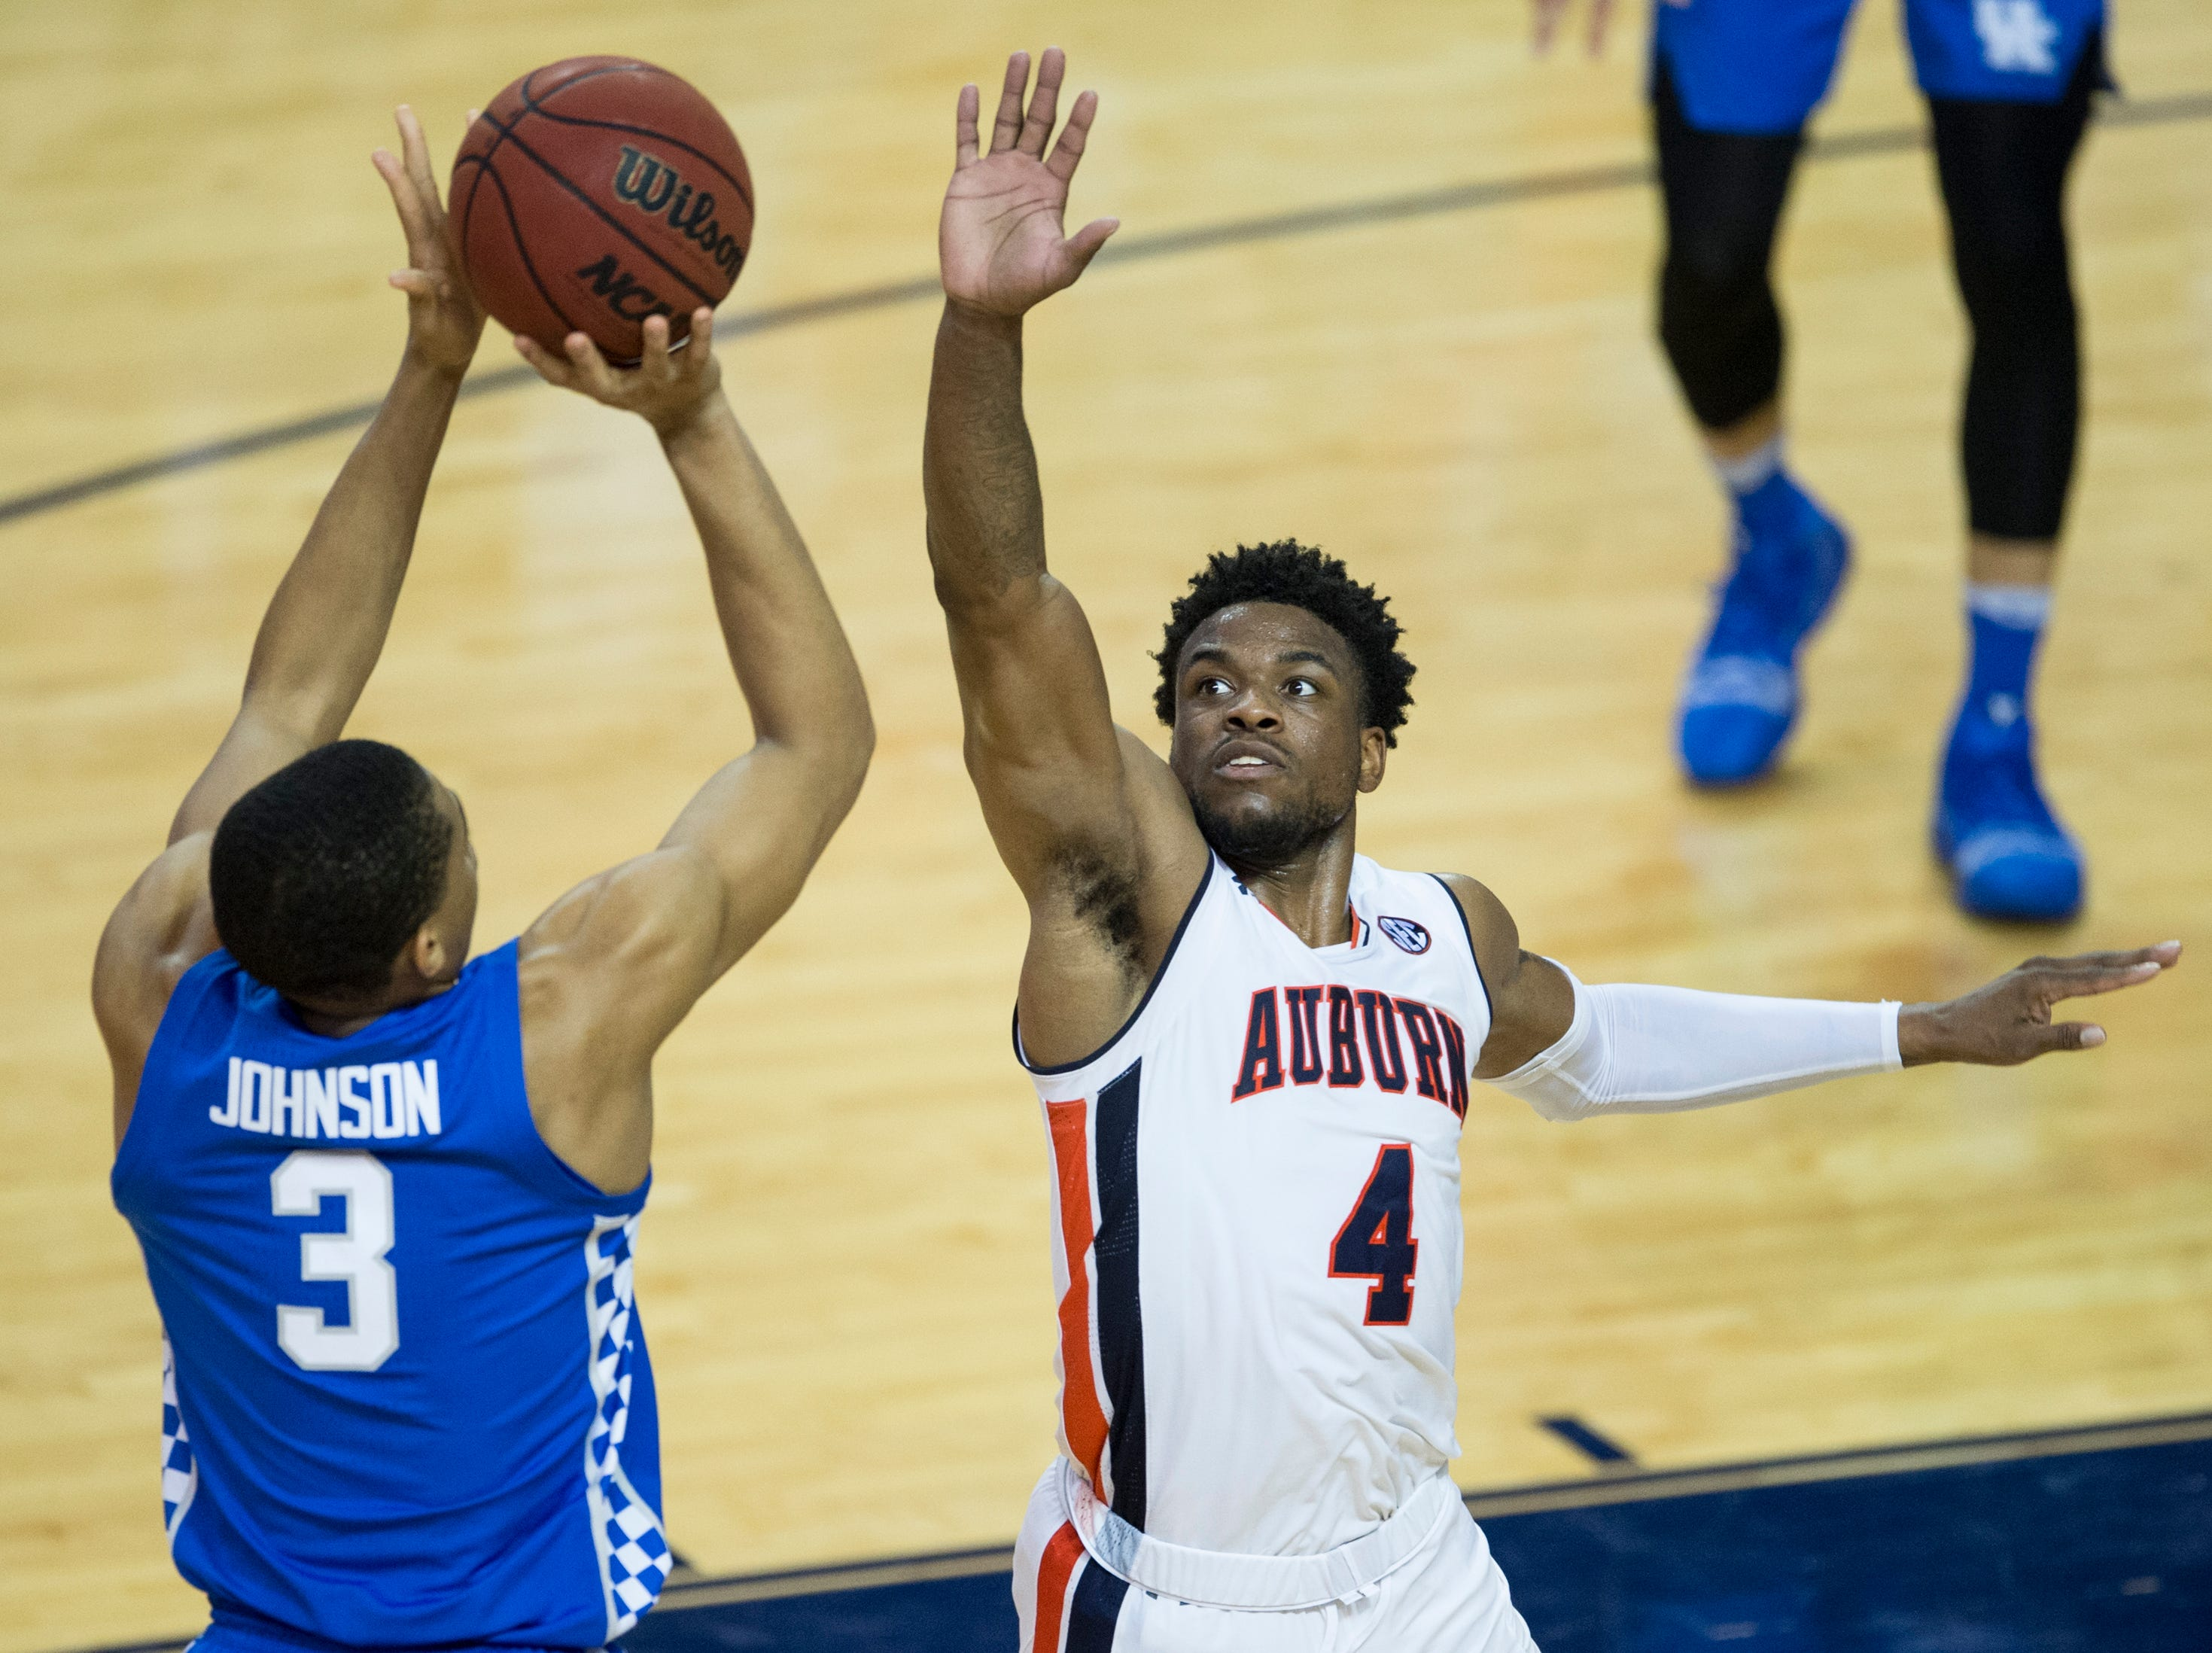 Auburn forward Danjel Purifoy (3) takes a three pointer over Auburn guard Malik Dunbar (4) at Auburn Arena in Auburn, Ala., on Saturday, Jan. 19, 2019. Kentucky defeats Auburn 82-80.